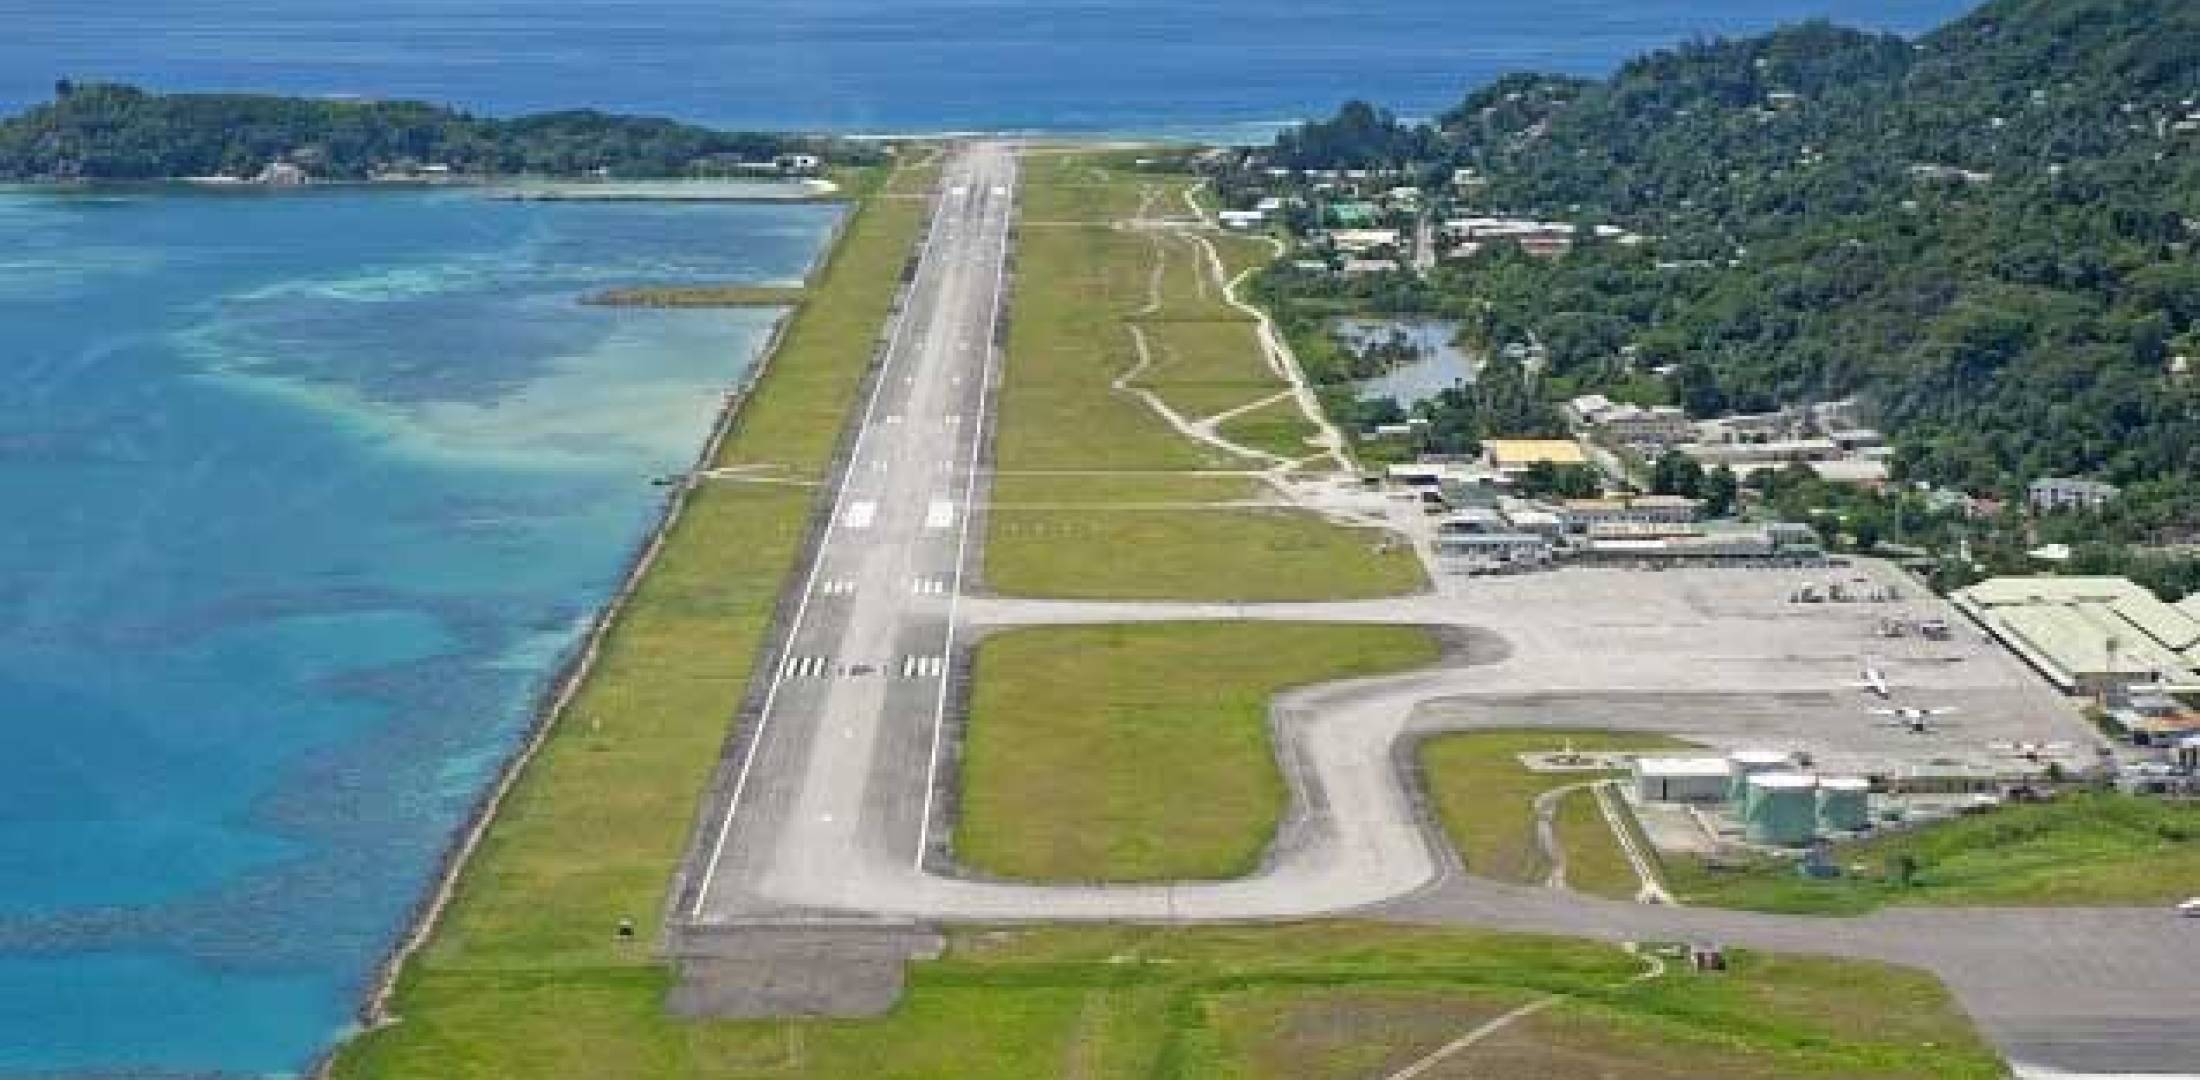 Seychelles International Airport on the island of Mahé